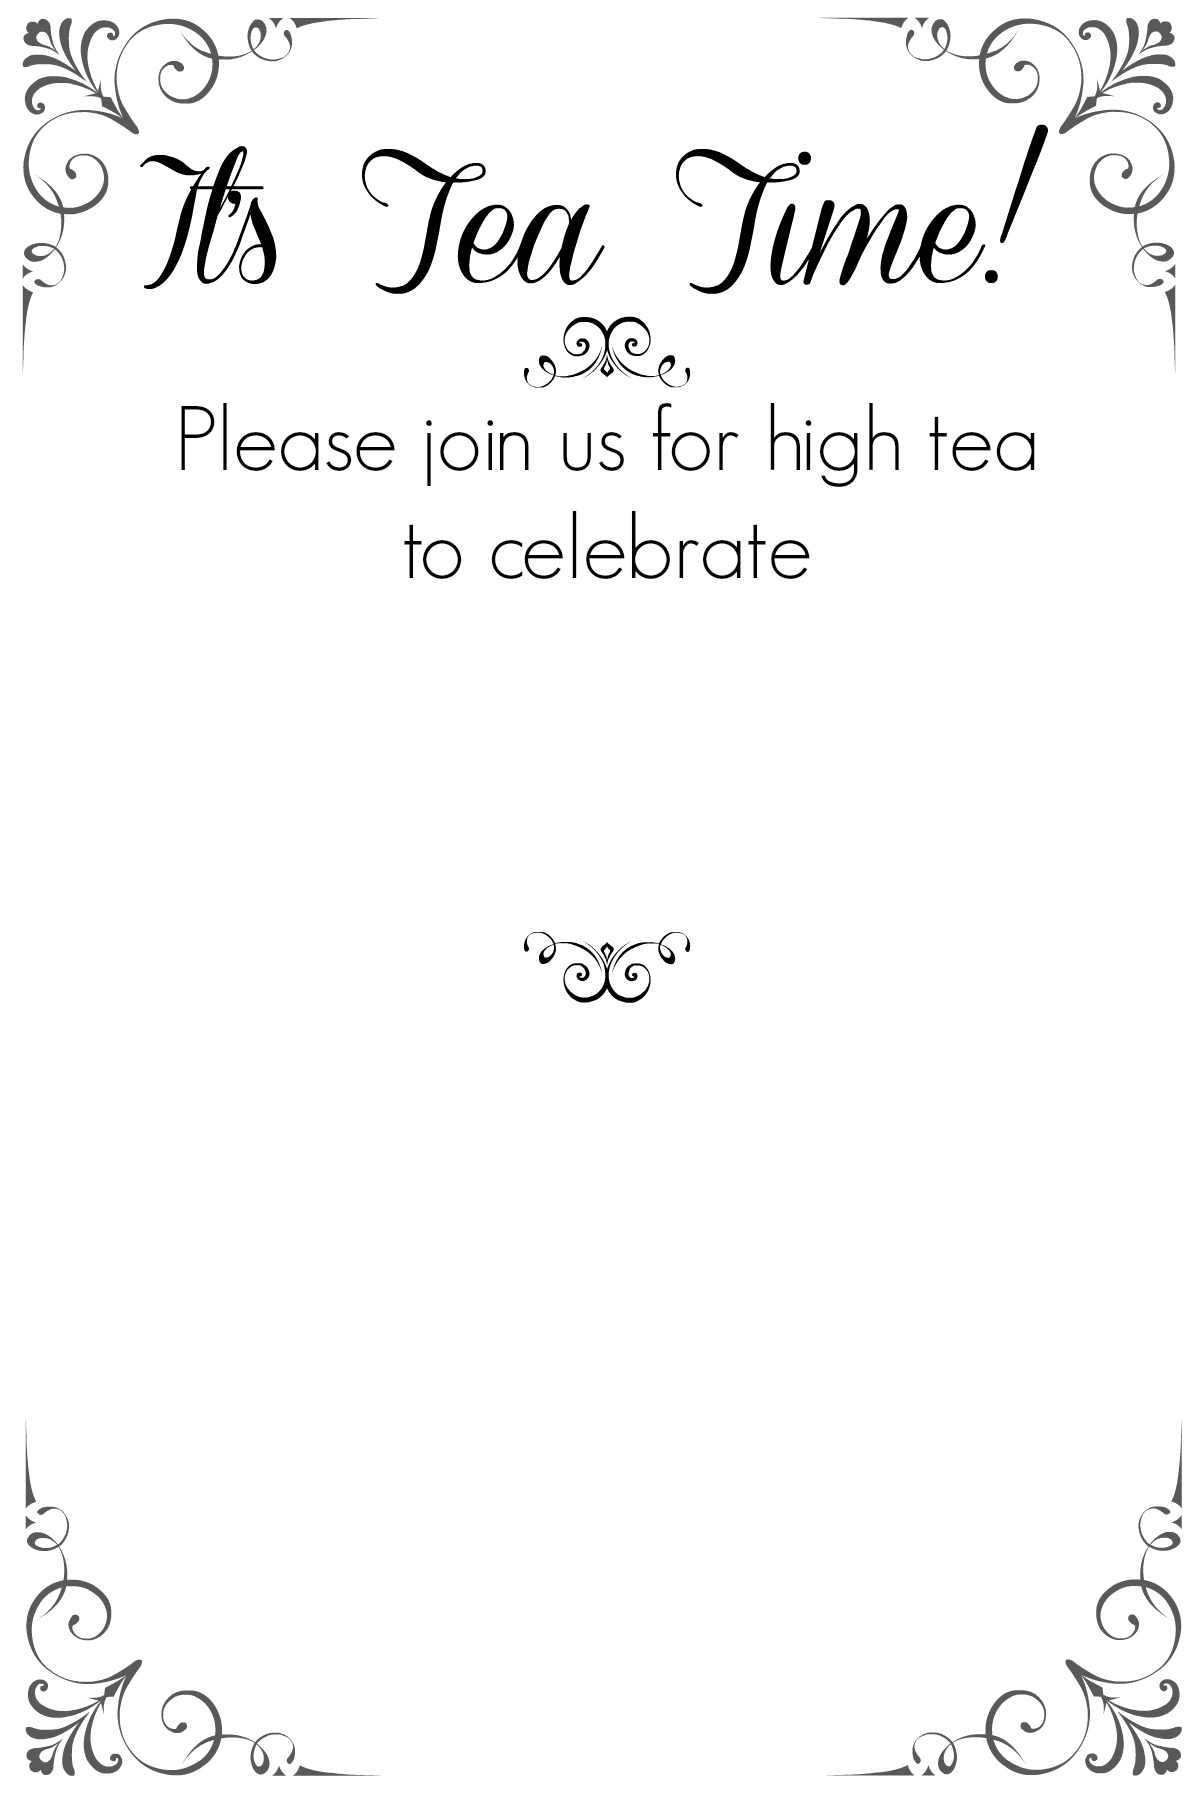 High tea party invitation discovering parenthood high tea party invitation stopboris